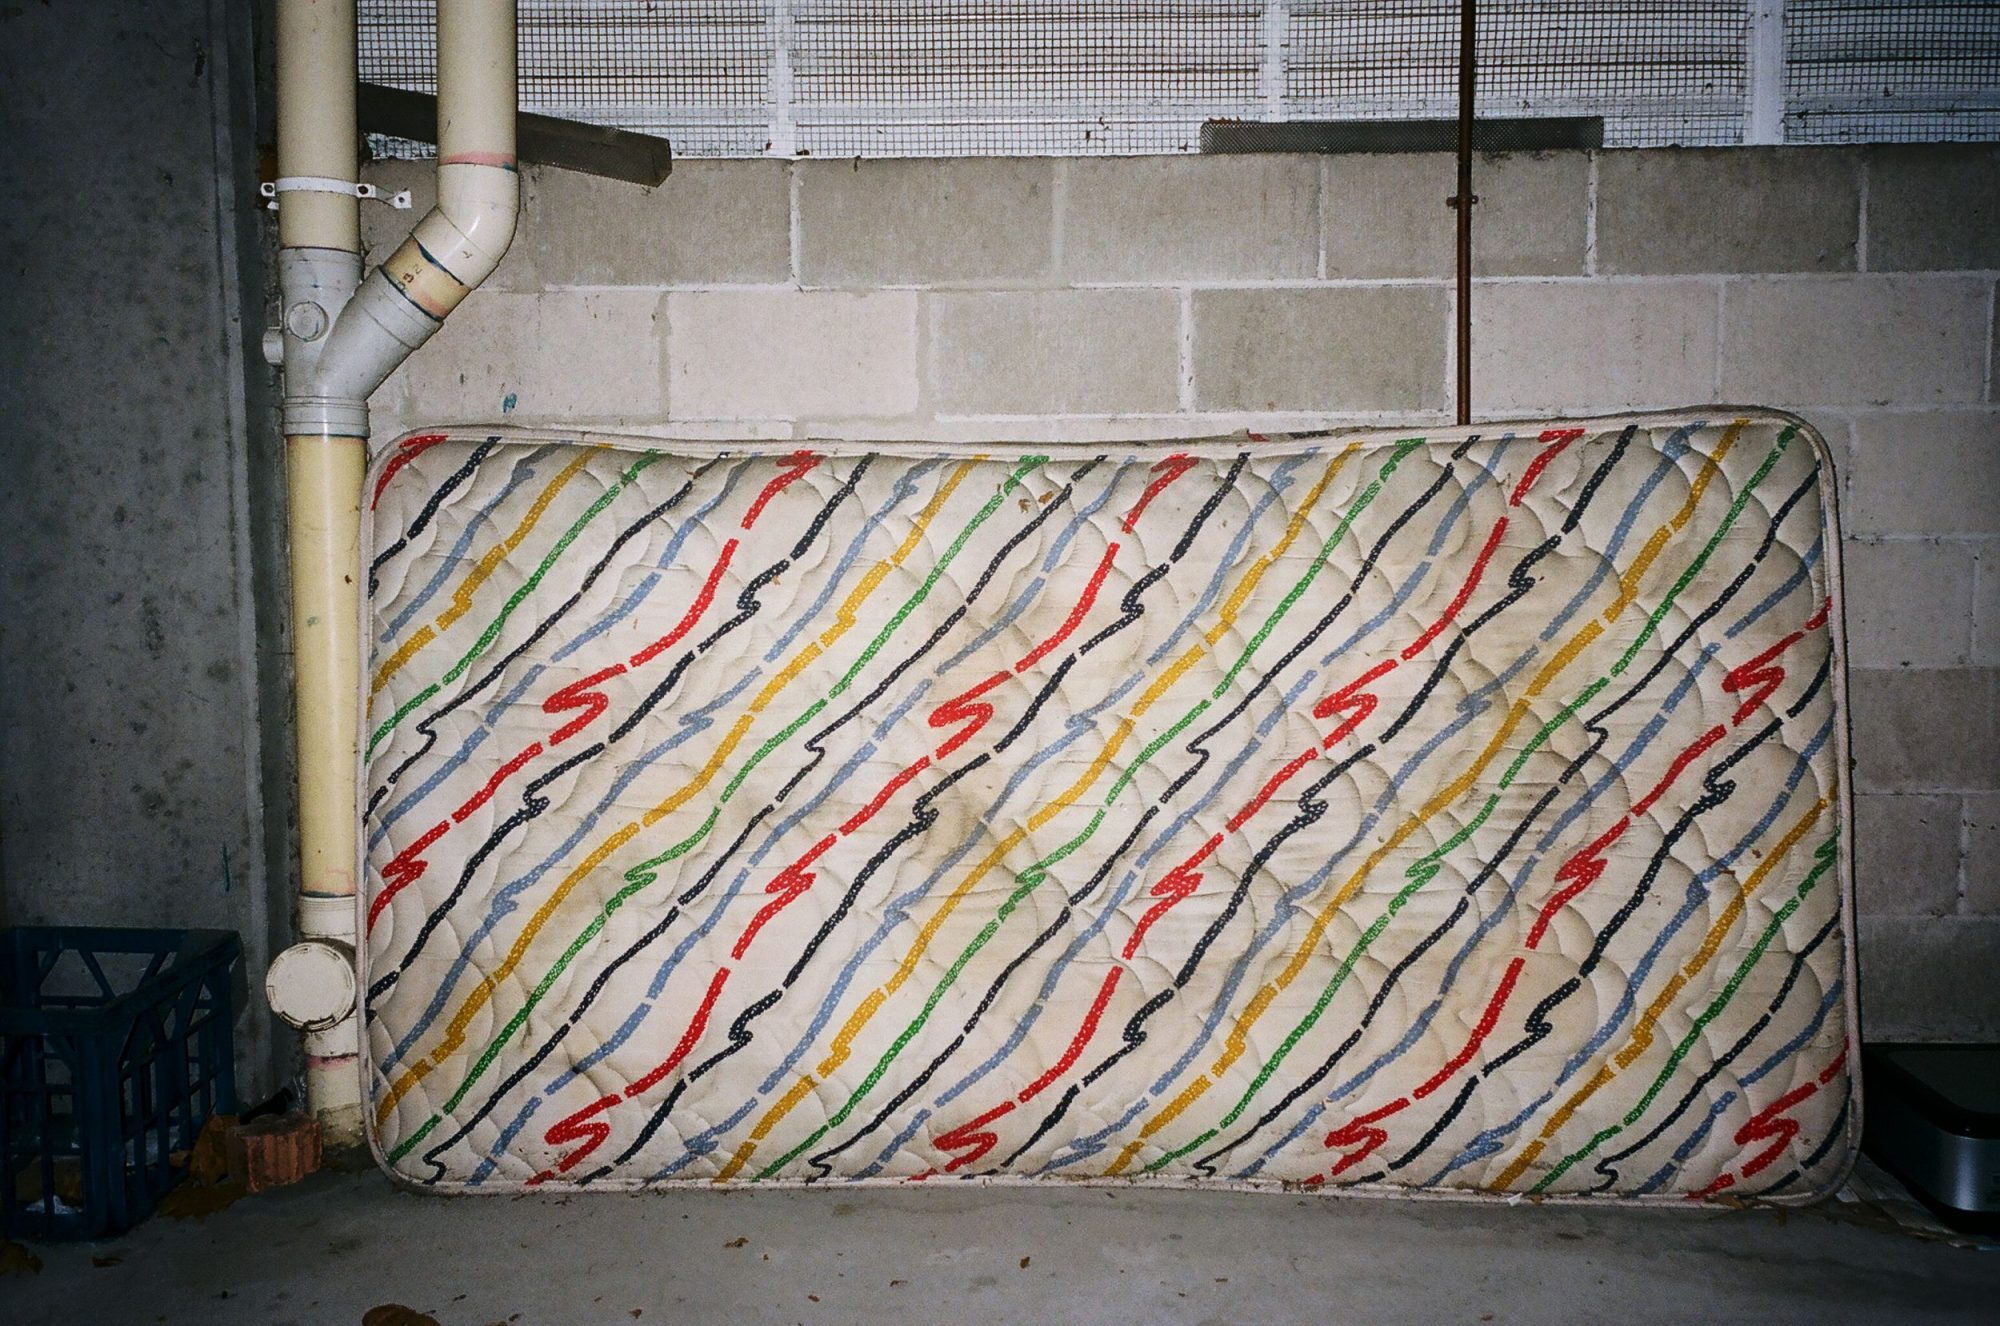 Eric Kim / Melbourne, 2012. A photograph of a colorful mattress I saw in a garage.